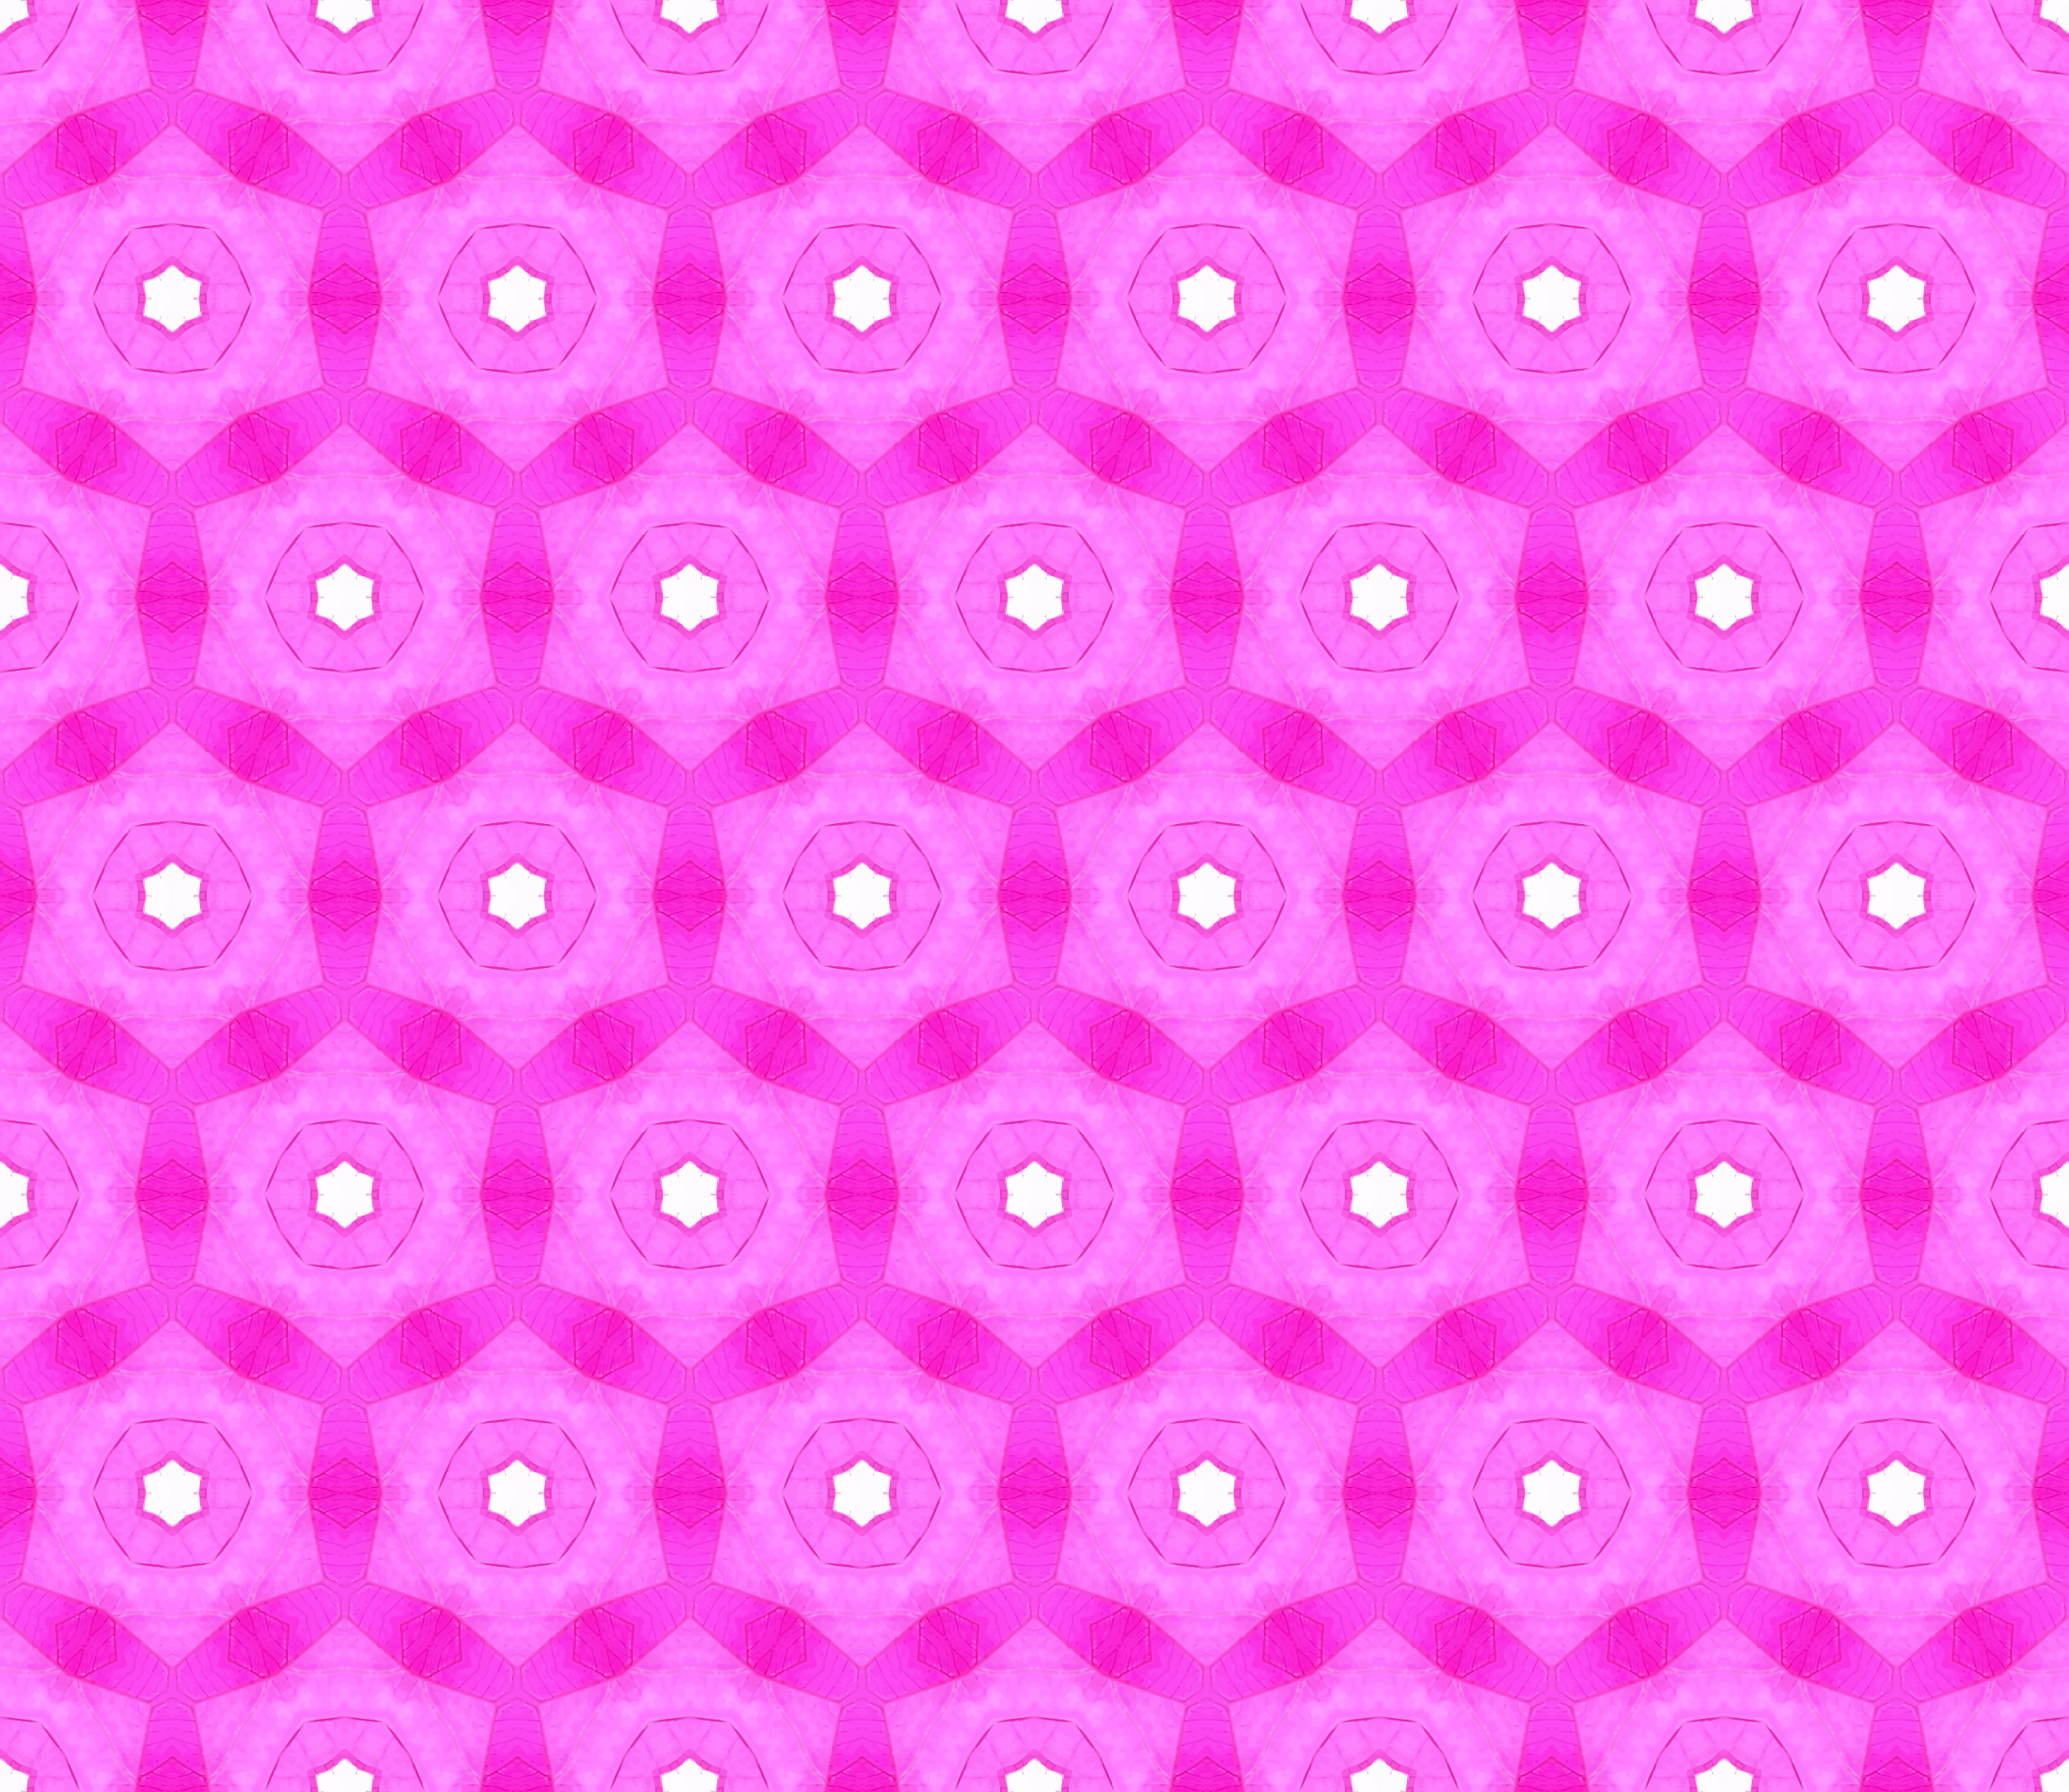 Background pattern 169 (colour 6) by Firkin